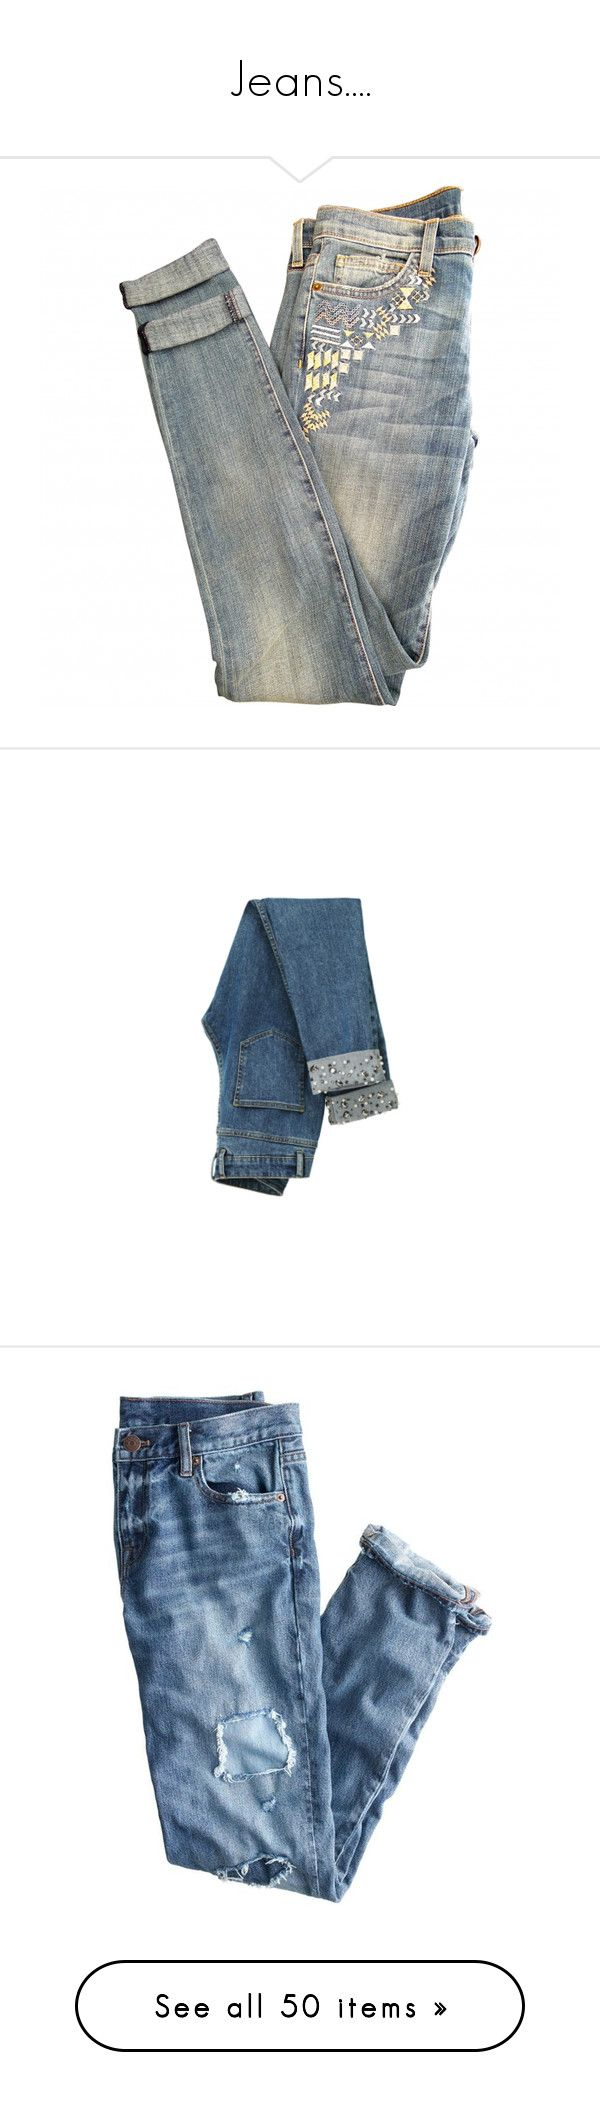 """Jeans...."" by sara-488 ❤ liked on Polyvore featuring men's fashion, men's clothing, men's jeans, pants, jeans, bottoms, denim, mens distressed jeans, mens patched jeans and mens destroyed jeans"